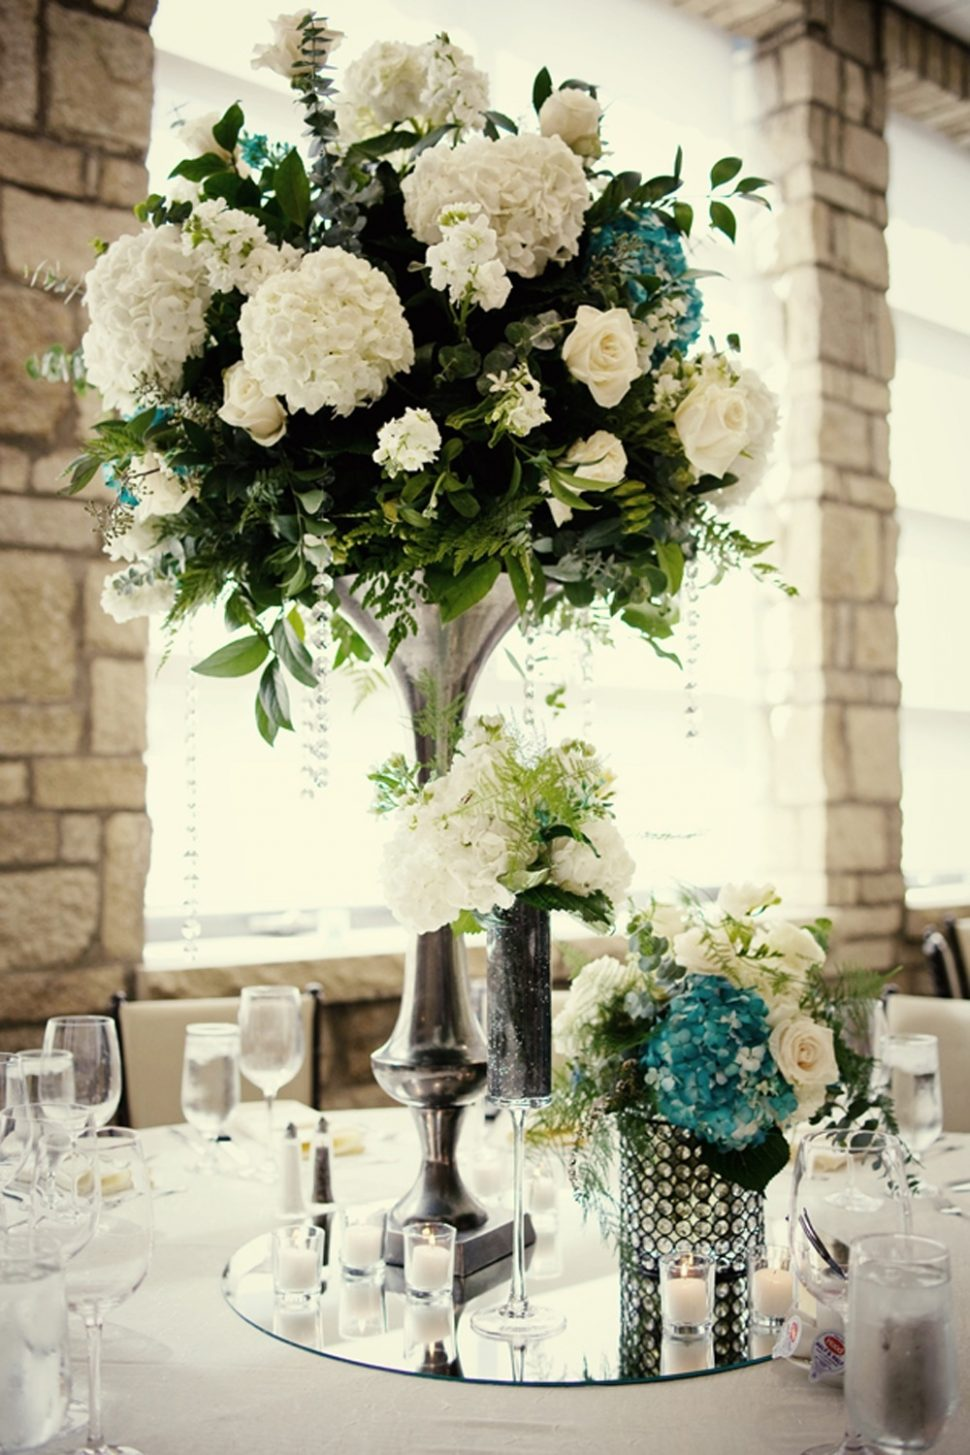 wedding ideas elegant reception centerpieces ivory hydrangeas teal accents table decorations with lanterns centerpiece candles for round tables weddings without flowers floating